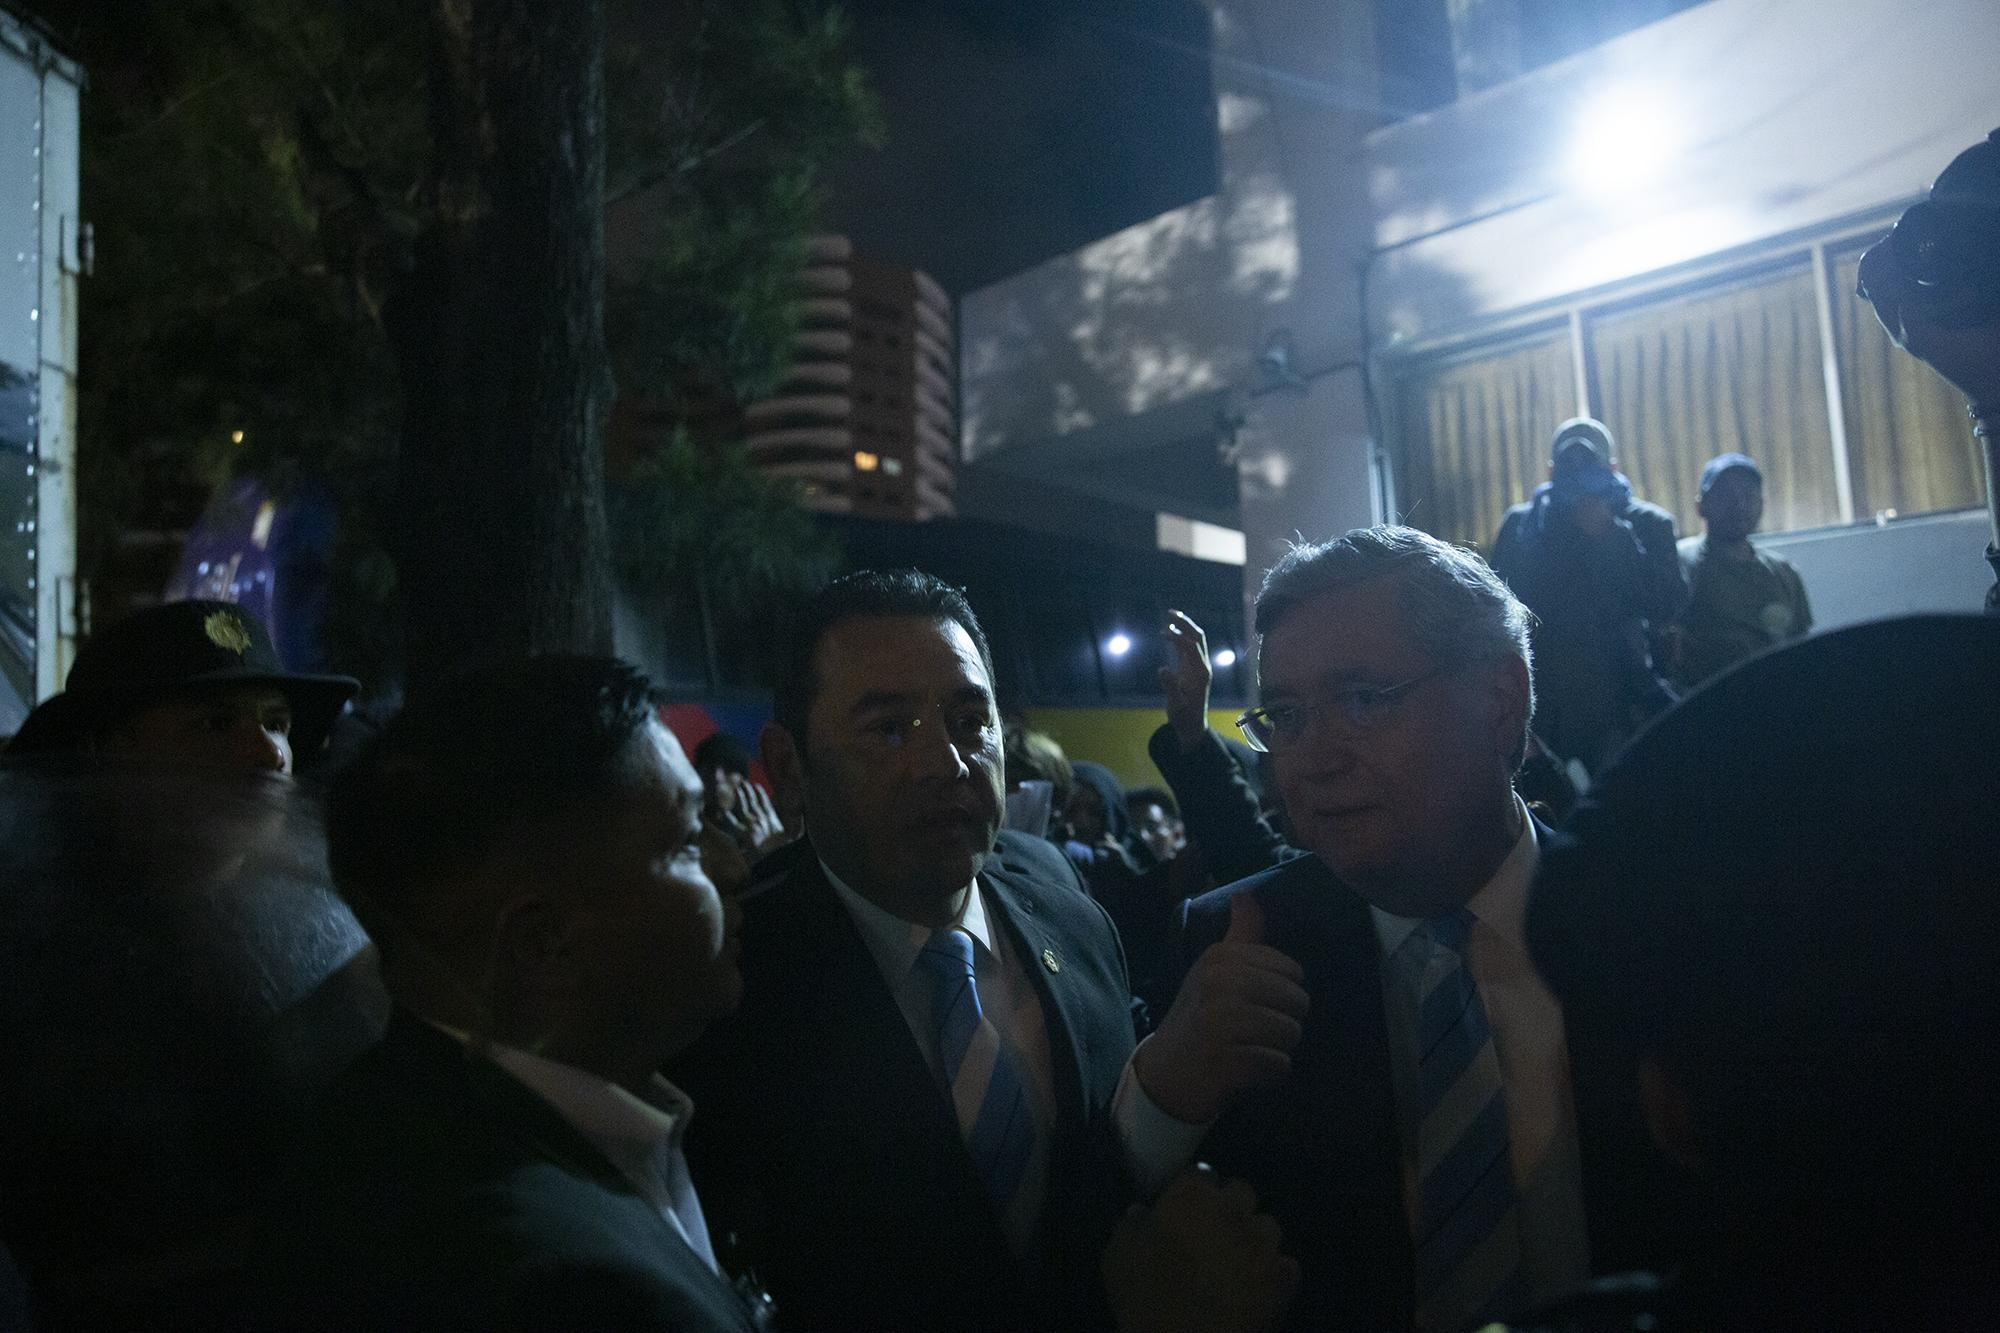 Photo caption: Former president Jimmy Morales tried to flee from protestors attempting to block him from reaching his inauguration as a Guatemalan representative to Parlacen on January 14, 2020. The protestors managed to hit Morales and pelt him with eggs. Photo by Carlos Barrera.